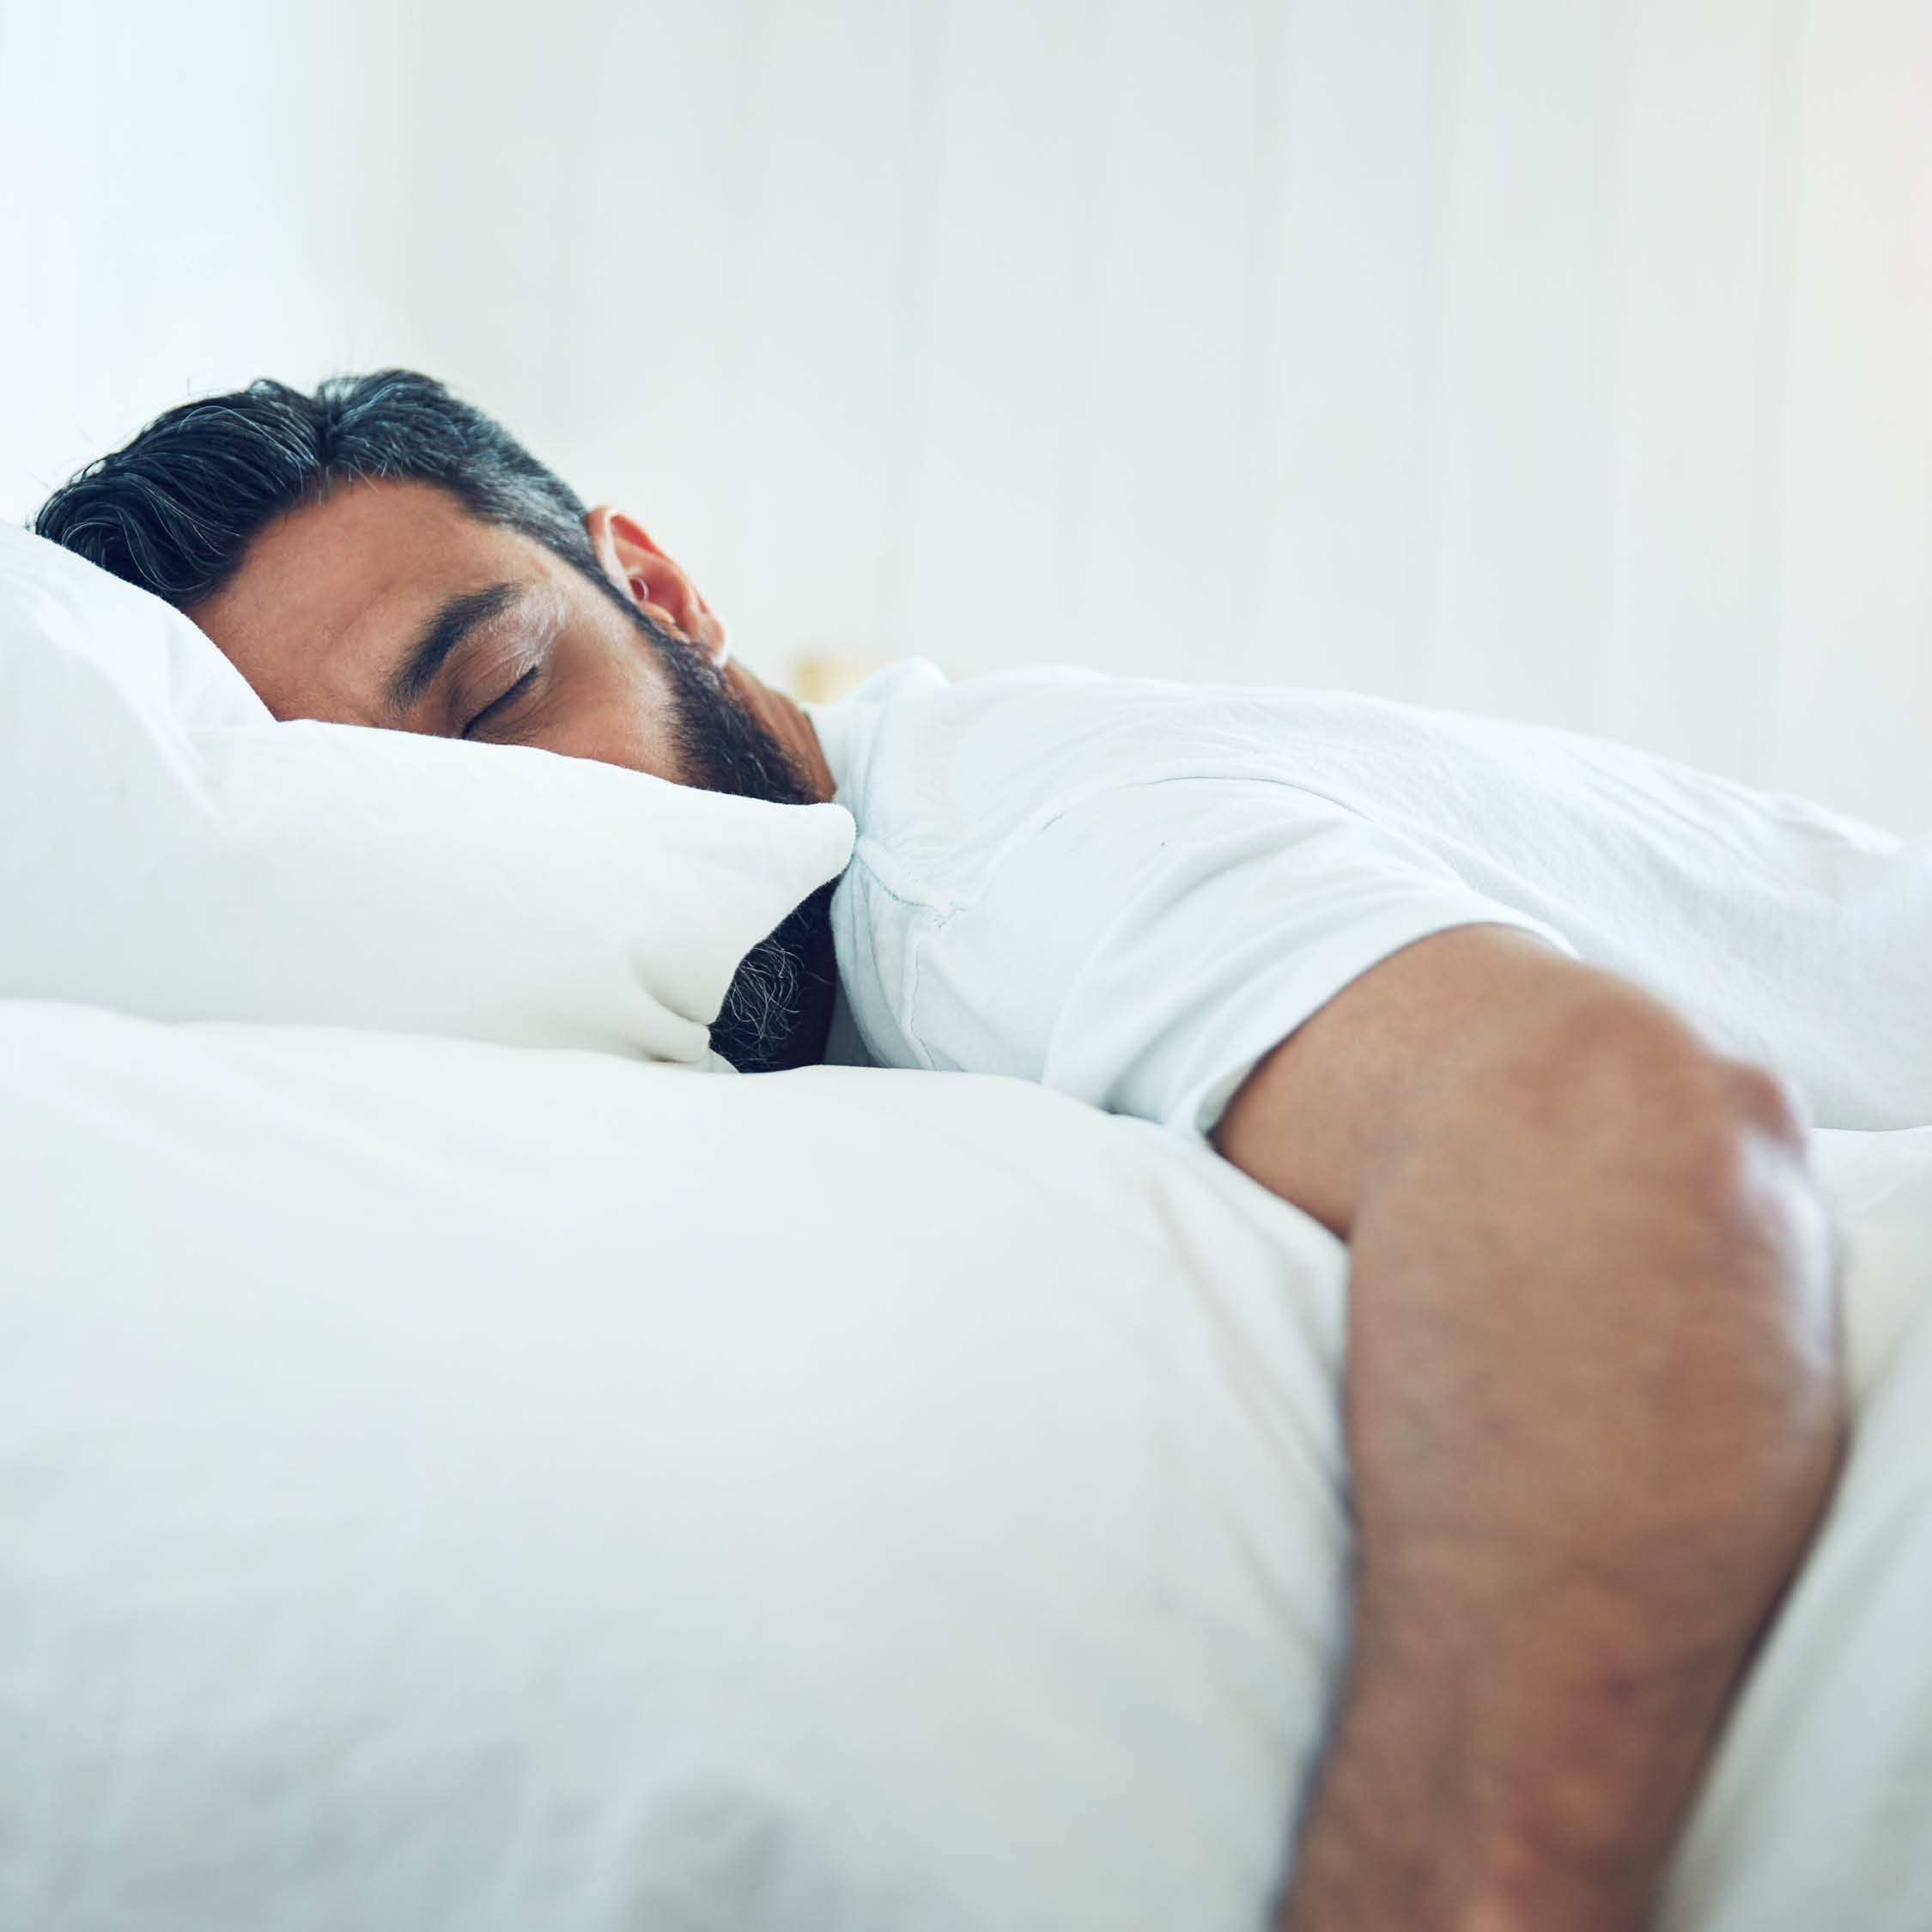 10 TIPS FOR A GREAT NIGHT'S SLEEP